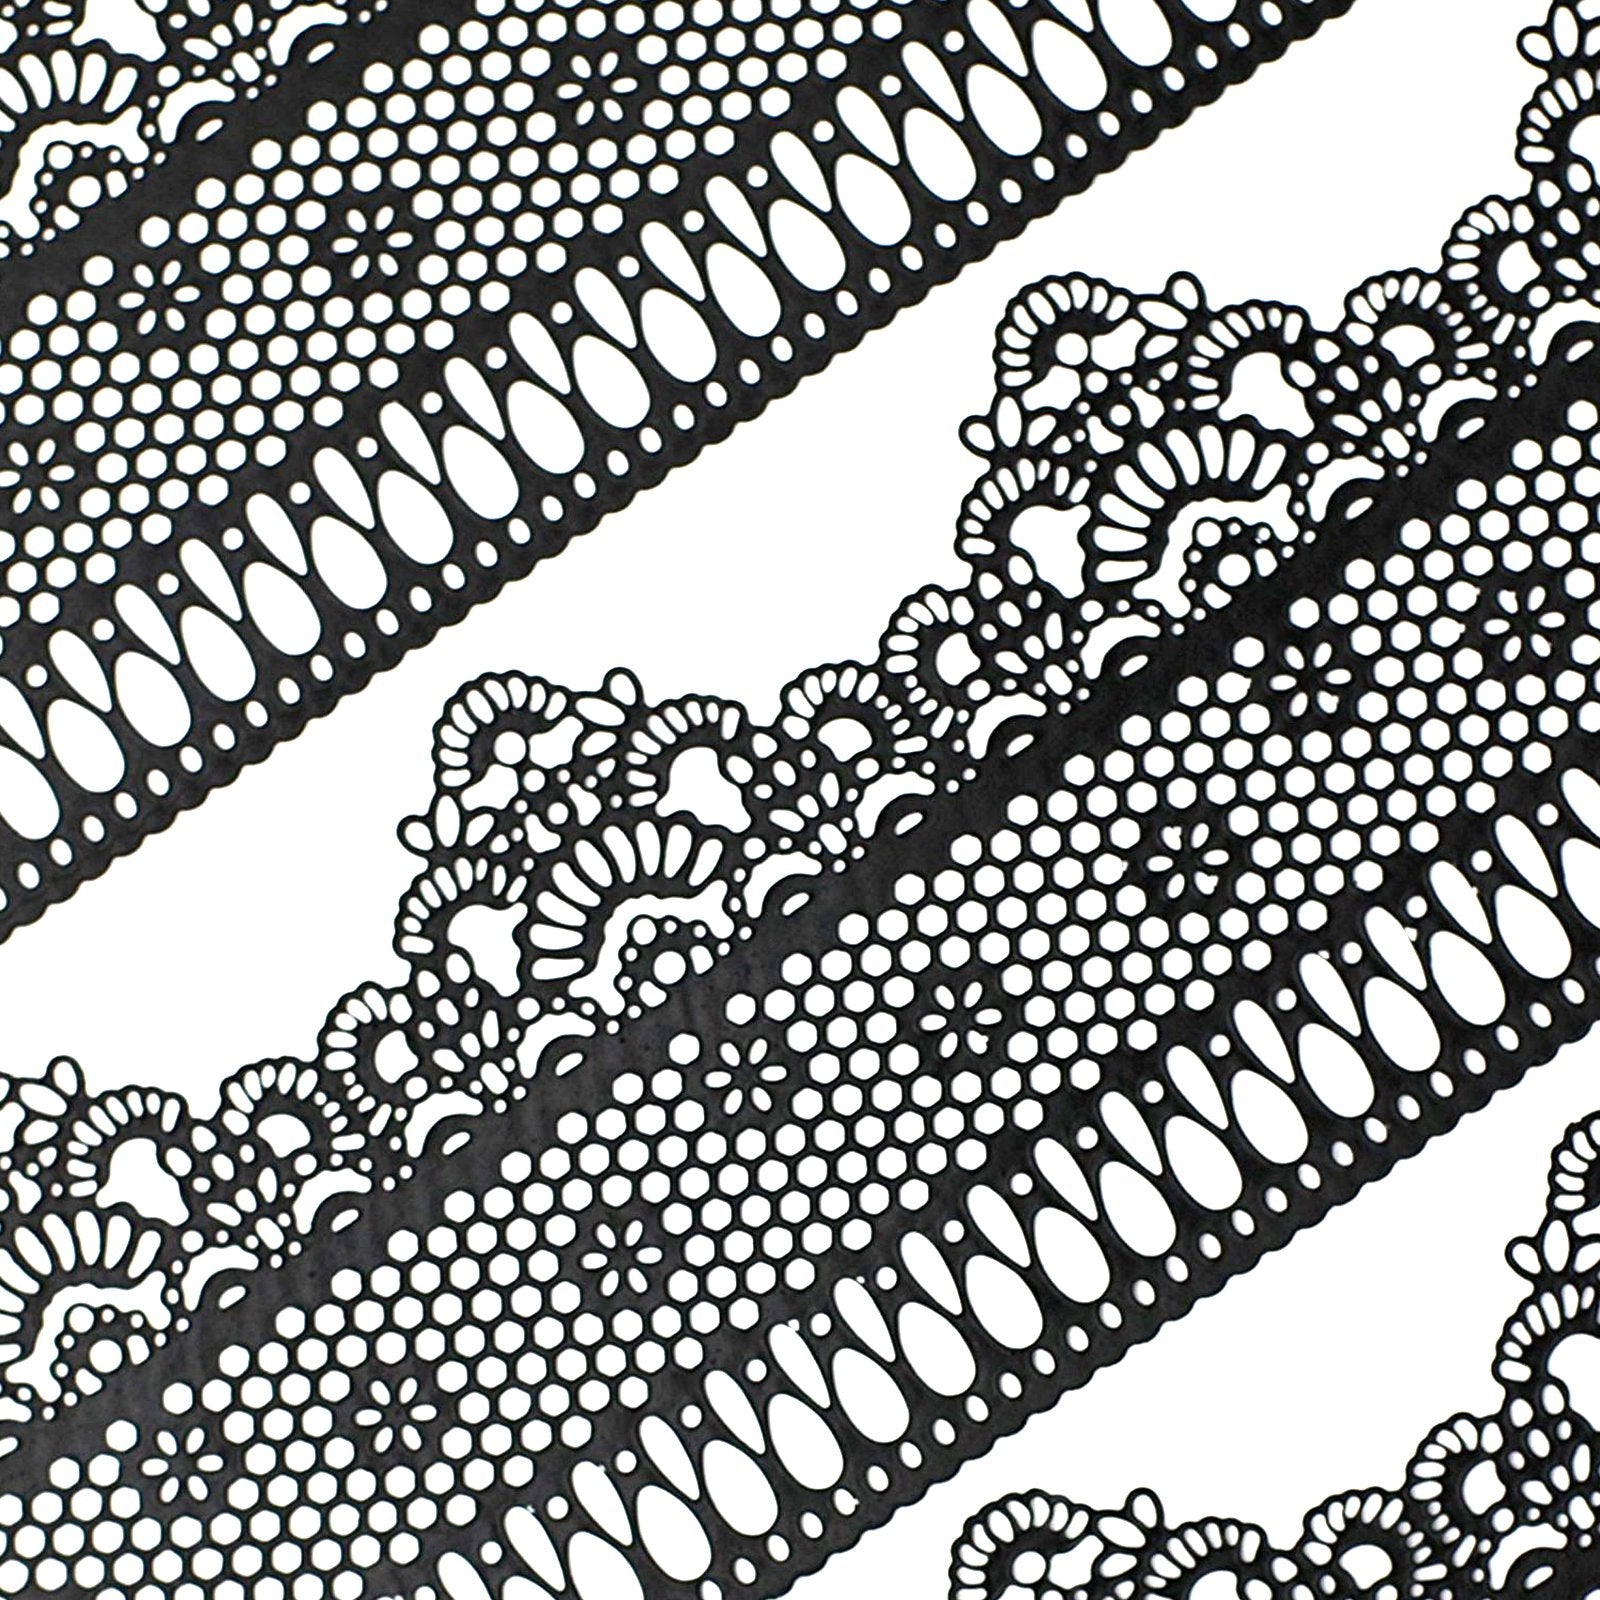 Edible Sugar Lace Lattice and Small Daisy Black